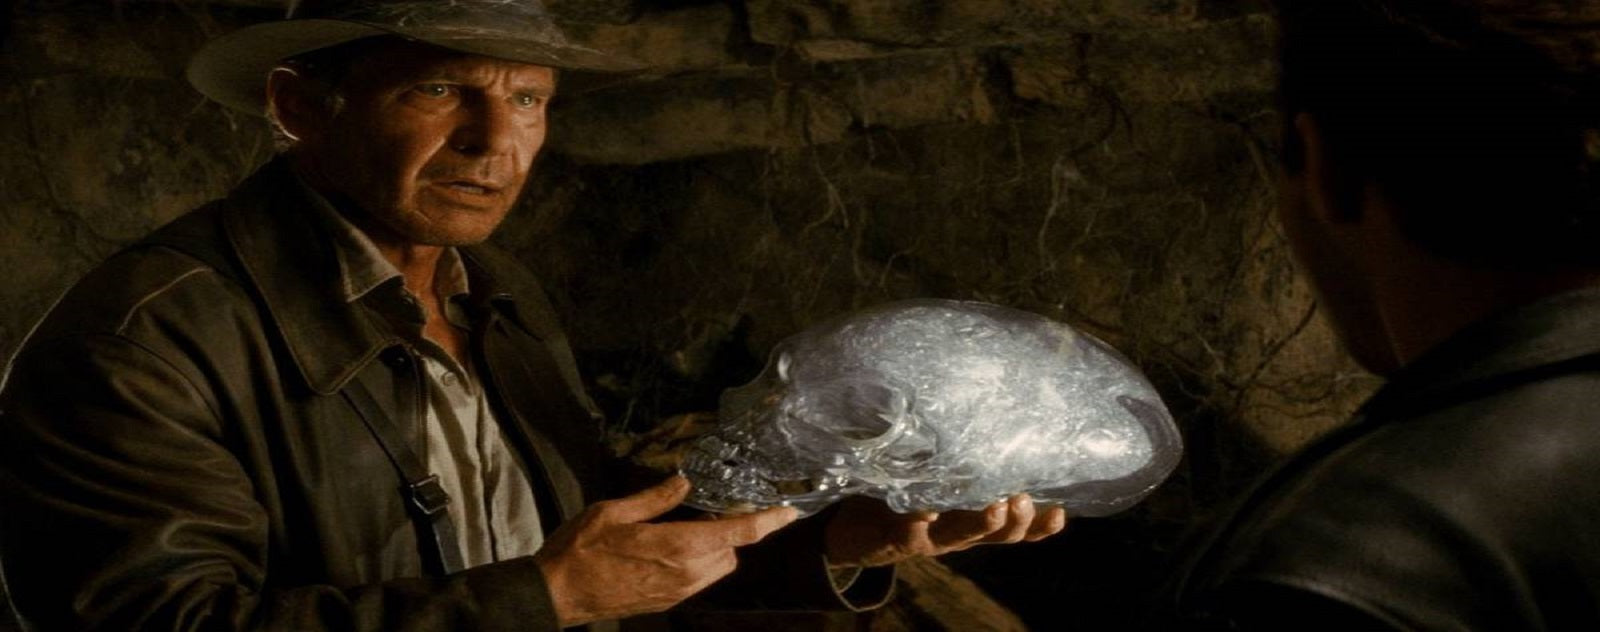 Indiana Jones et le crane de crystal